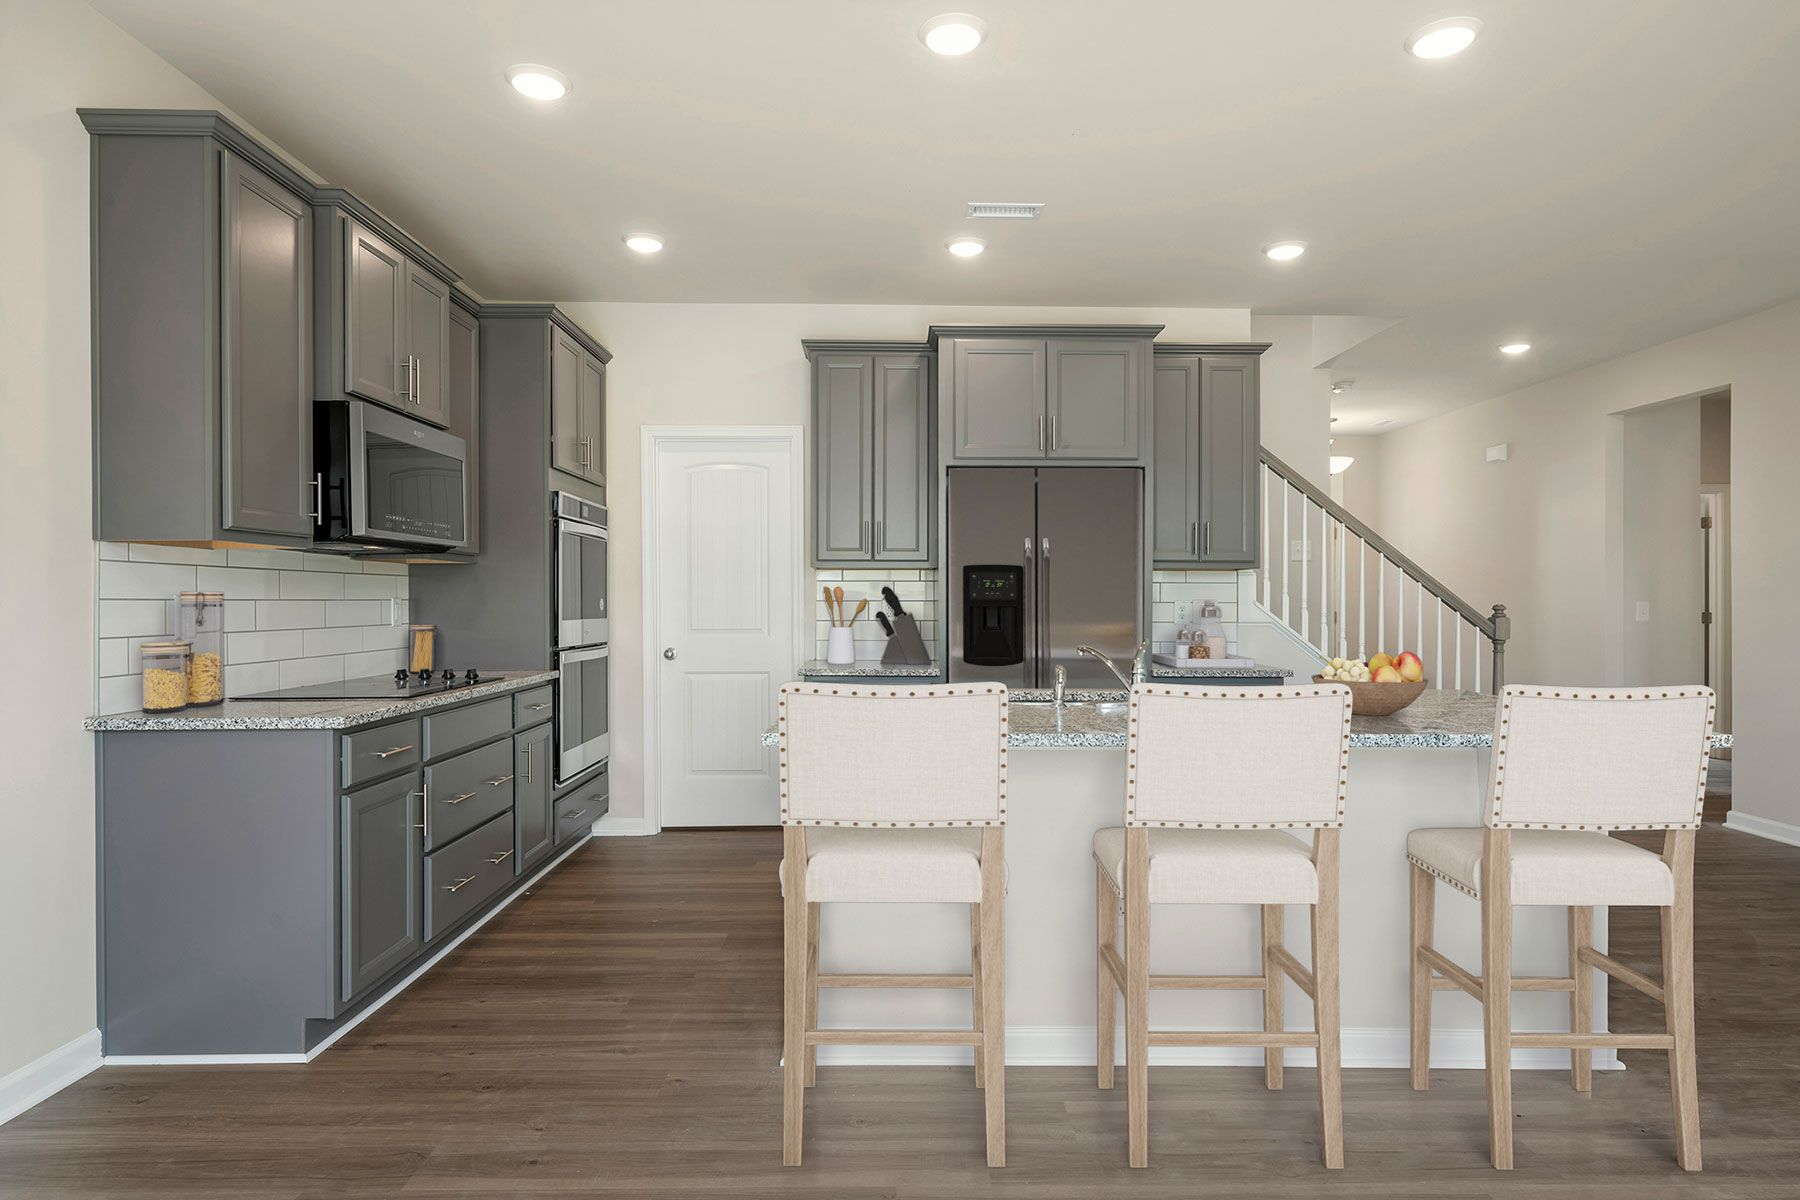 Kendall Plan Kitchen at Bedford at Flowers Plantation in Clayton North Carolina by Mattamy Homes